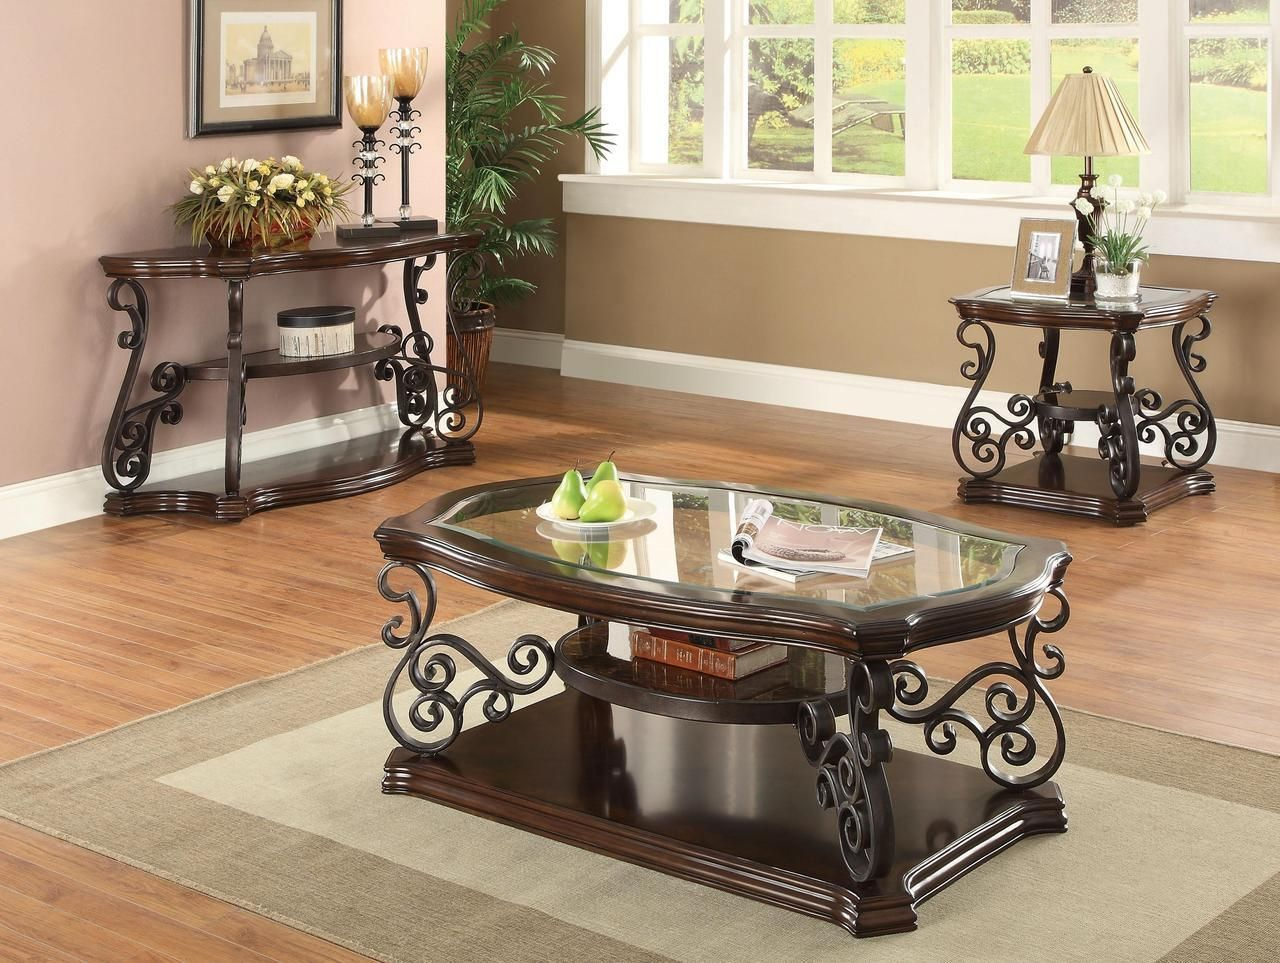 Best Scrollwork Showpiece Occasional Tables With Images 640 x 480